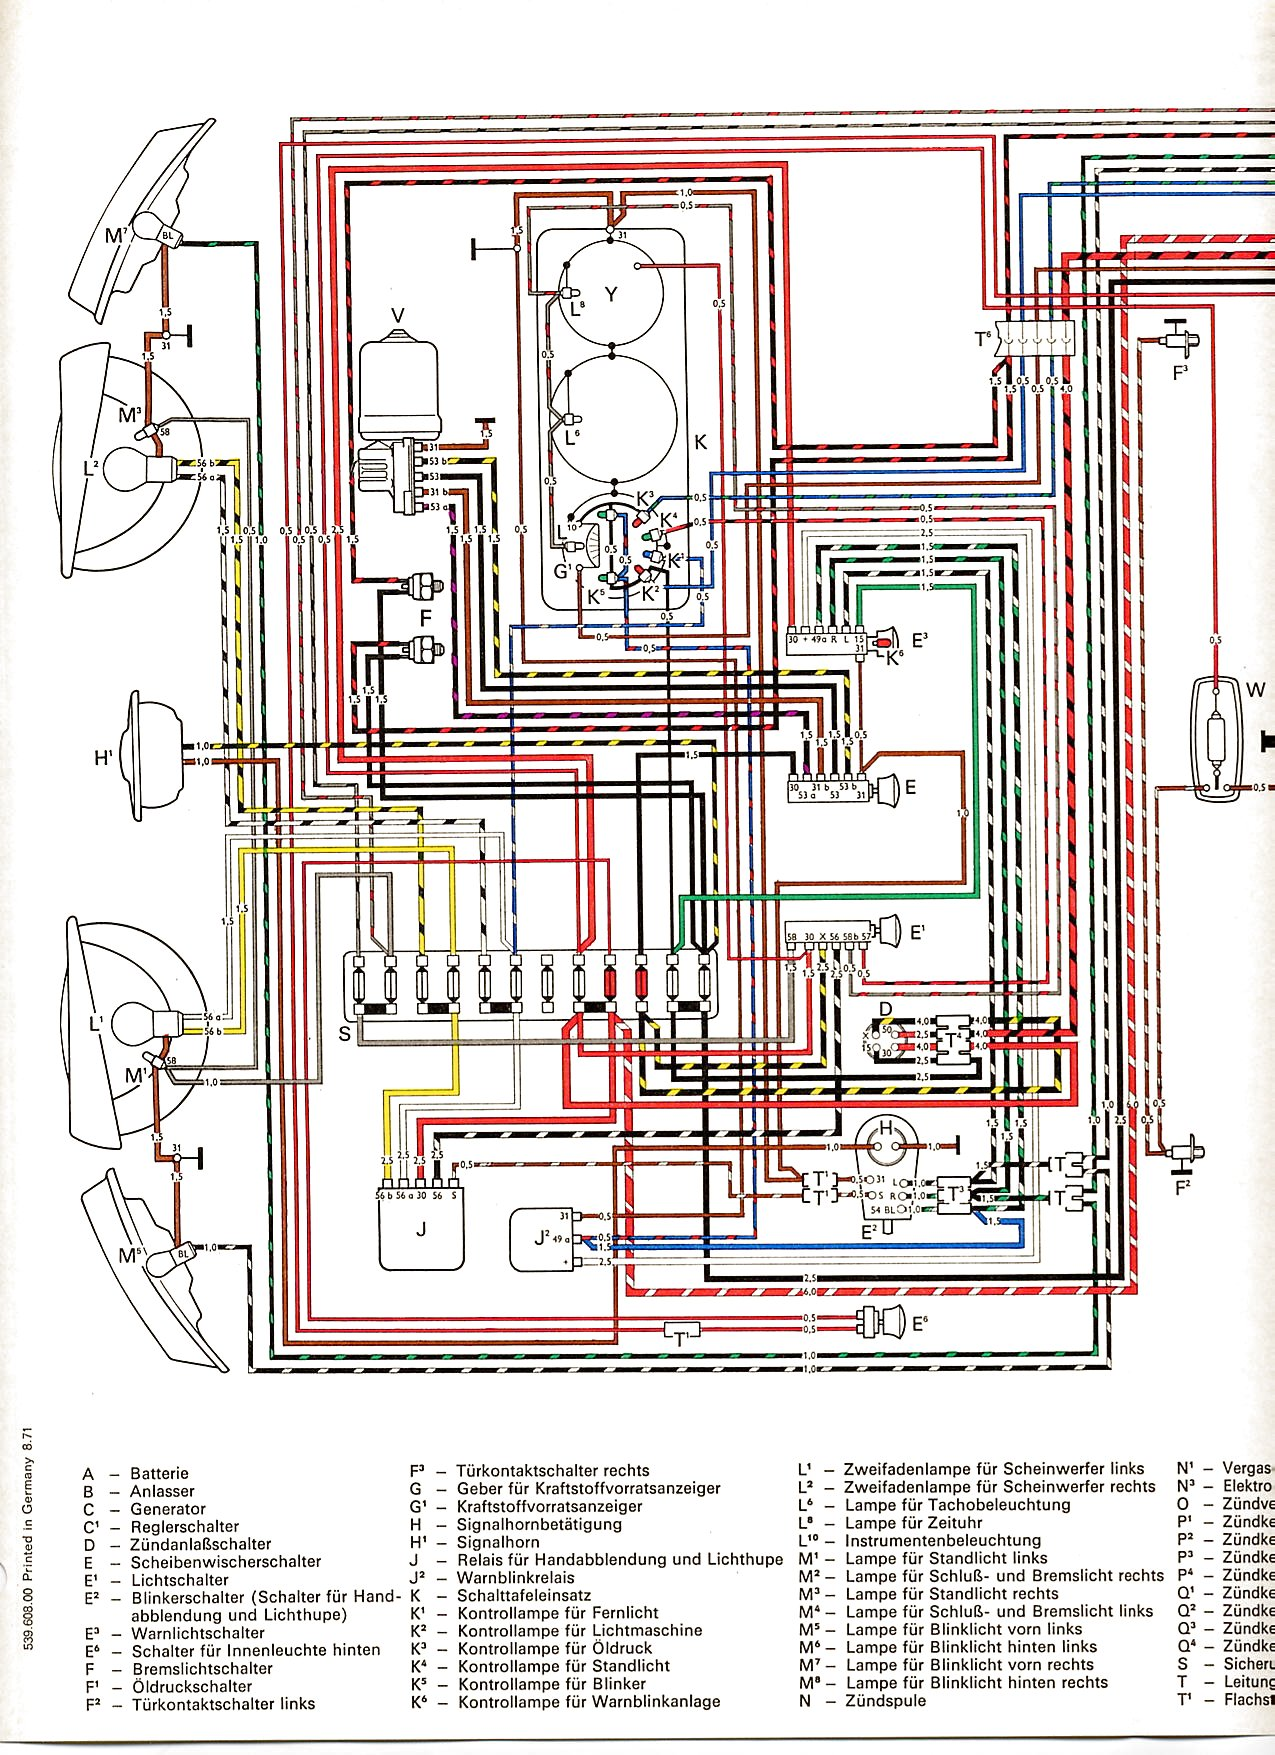 Type 1 Vw Wire Diagram List Of Schematic Circuit 2004 Volvo V70 Headlight Wiring Vintagebus Com Bus And Other Diagrams Rh